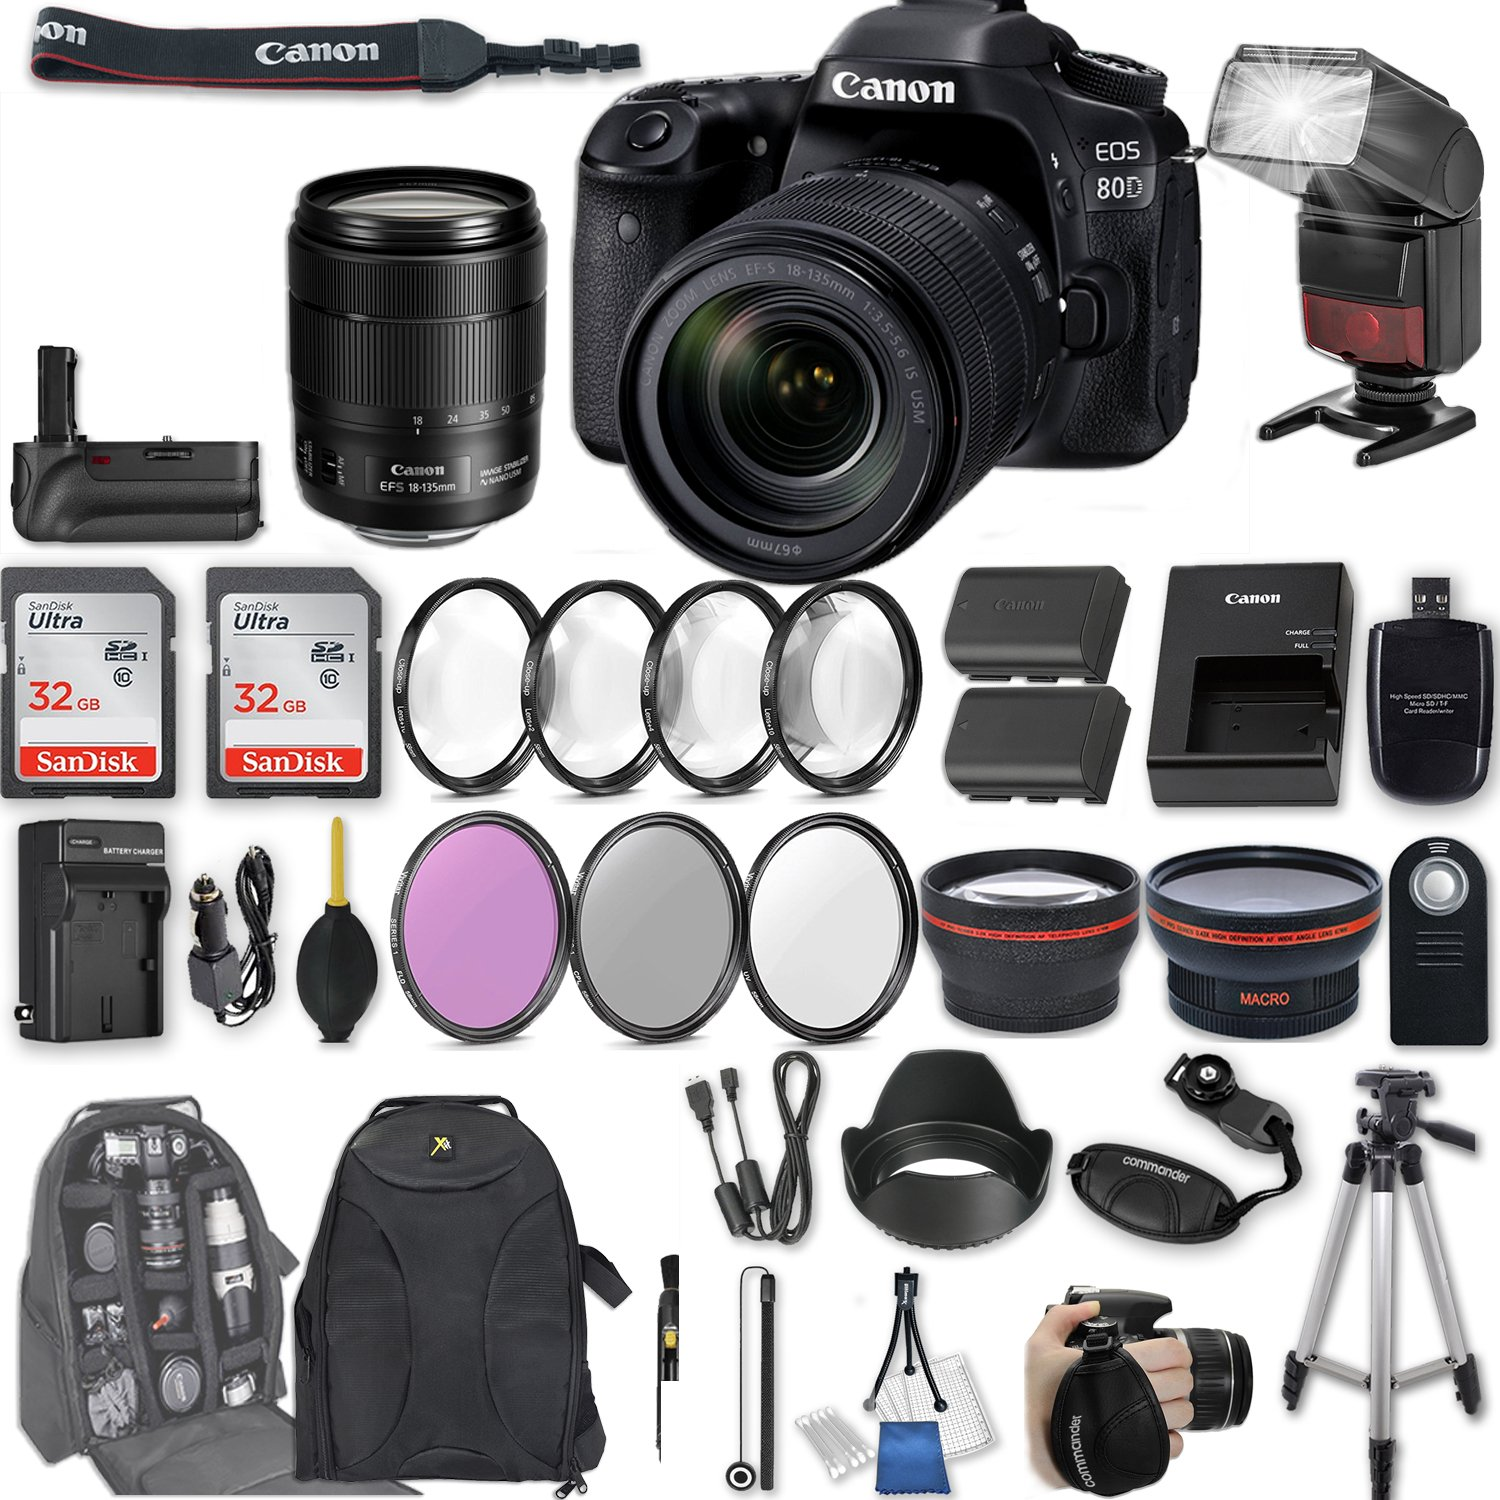 Canon EOS 80D DSLR Camera with EF-S 18-135mm f/3.5-5.6 IS USM Lens + 2Pcs 32GB Sandisk SD Memory + Automatic Flash + Battery Grip + Filter & Macro Kits + Backpack + 50'' Tripod + More by Canon